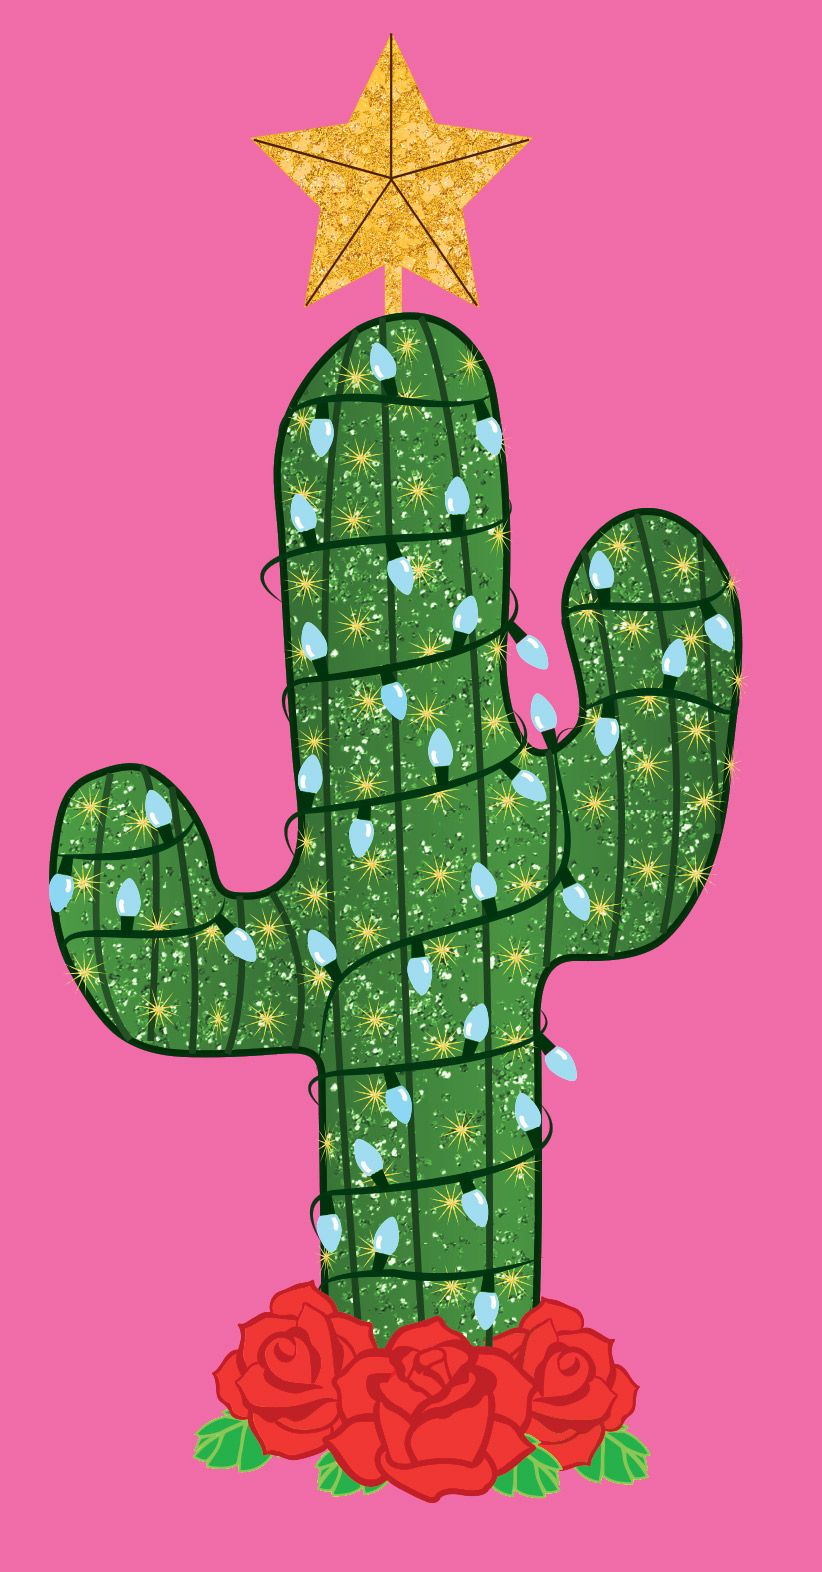 Cactus Christmas Tree to make my heart sing